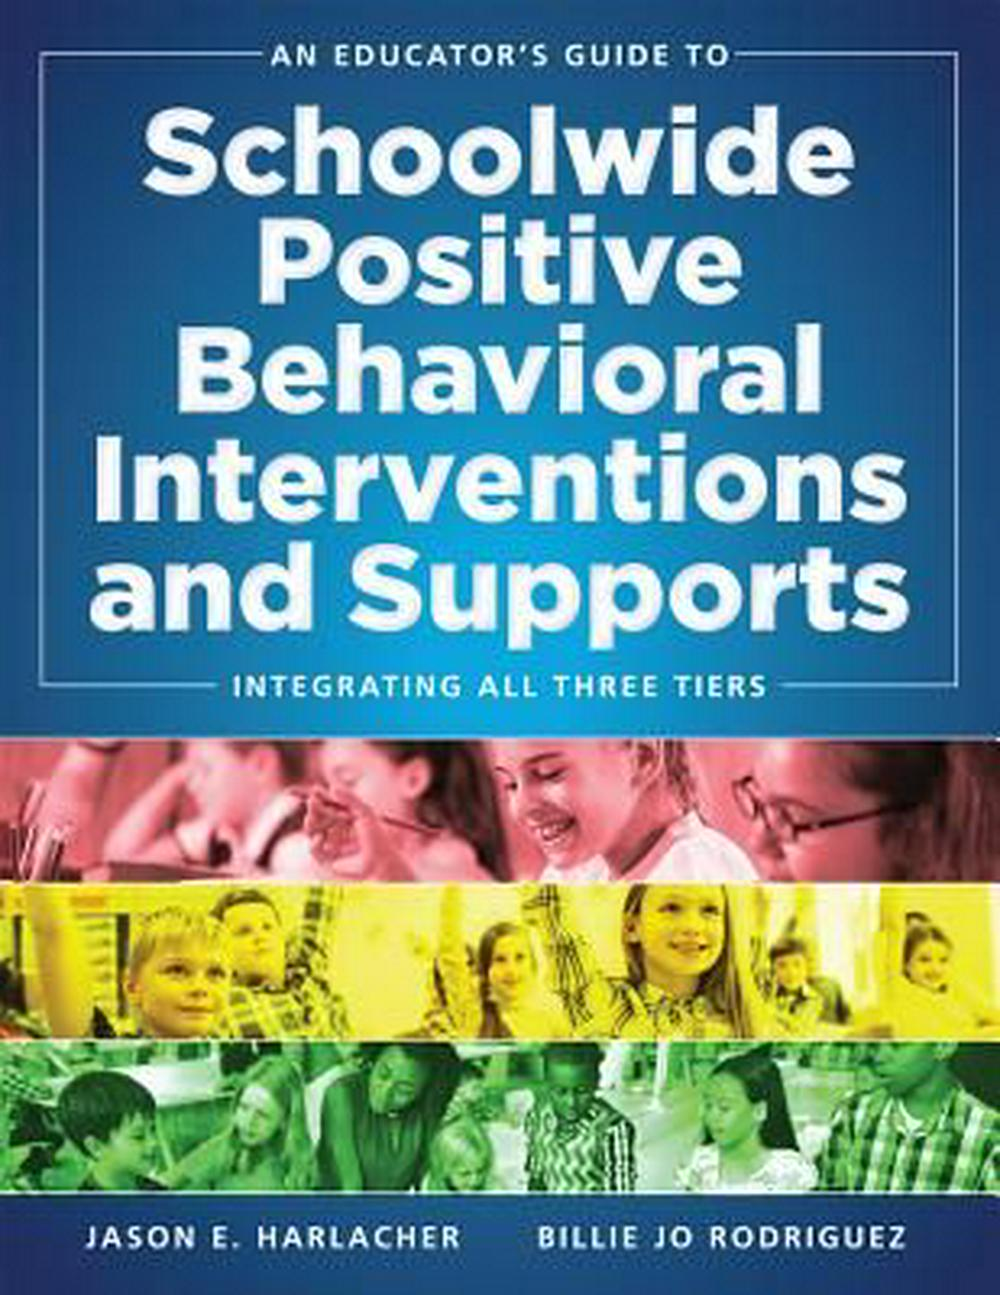 An Educator's Guide to Schoolwide Positive Behavioral Interventions and SupportIntegrating All Three Tiers: Swpbis Strategies by Jason E. Harlacher,Billie Jo Rodriguez, ISBN: 9780990345879